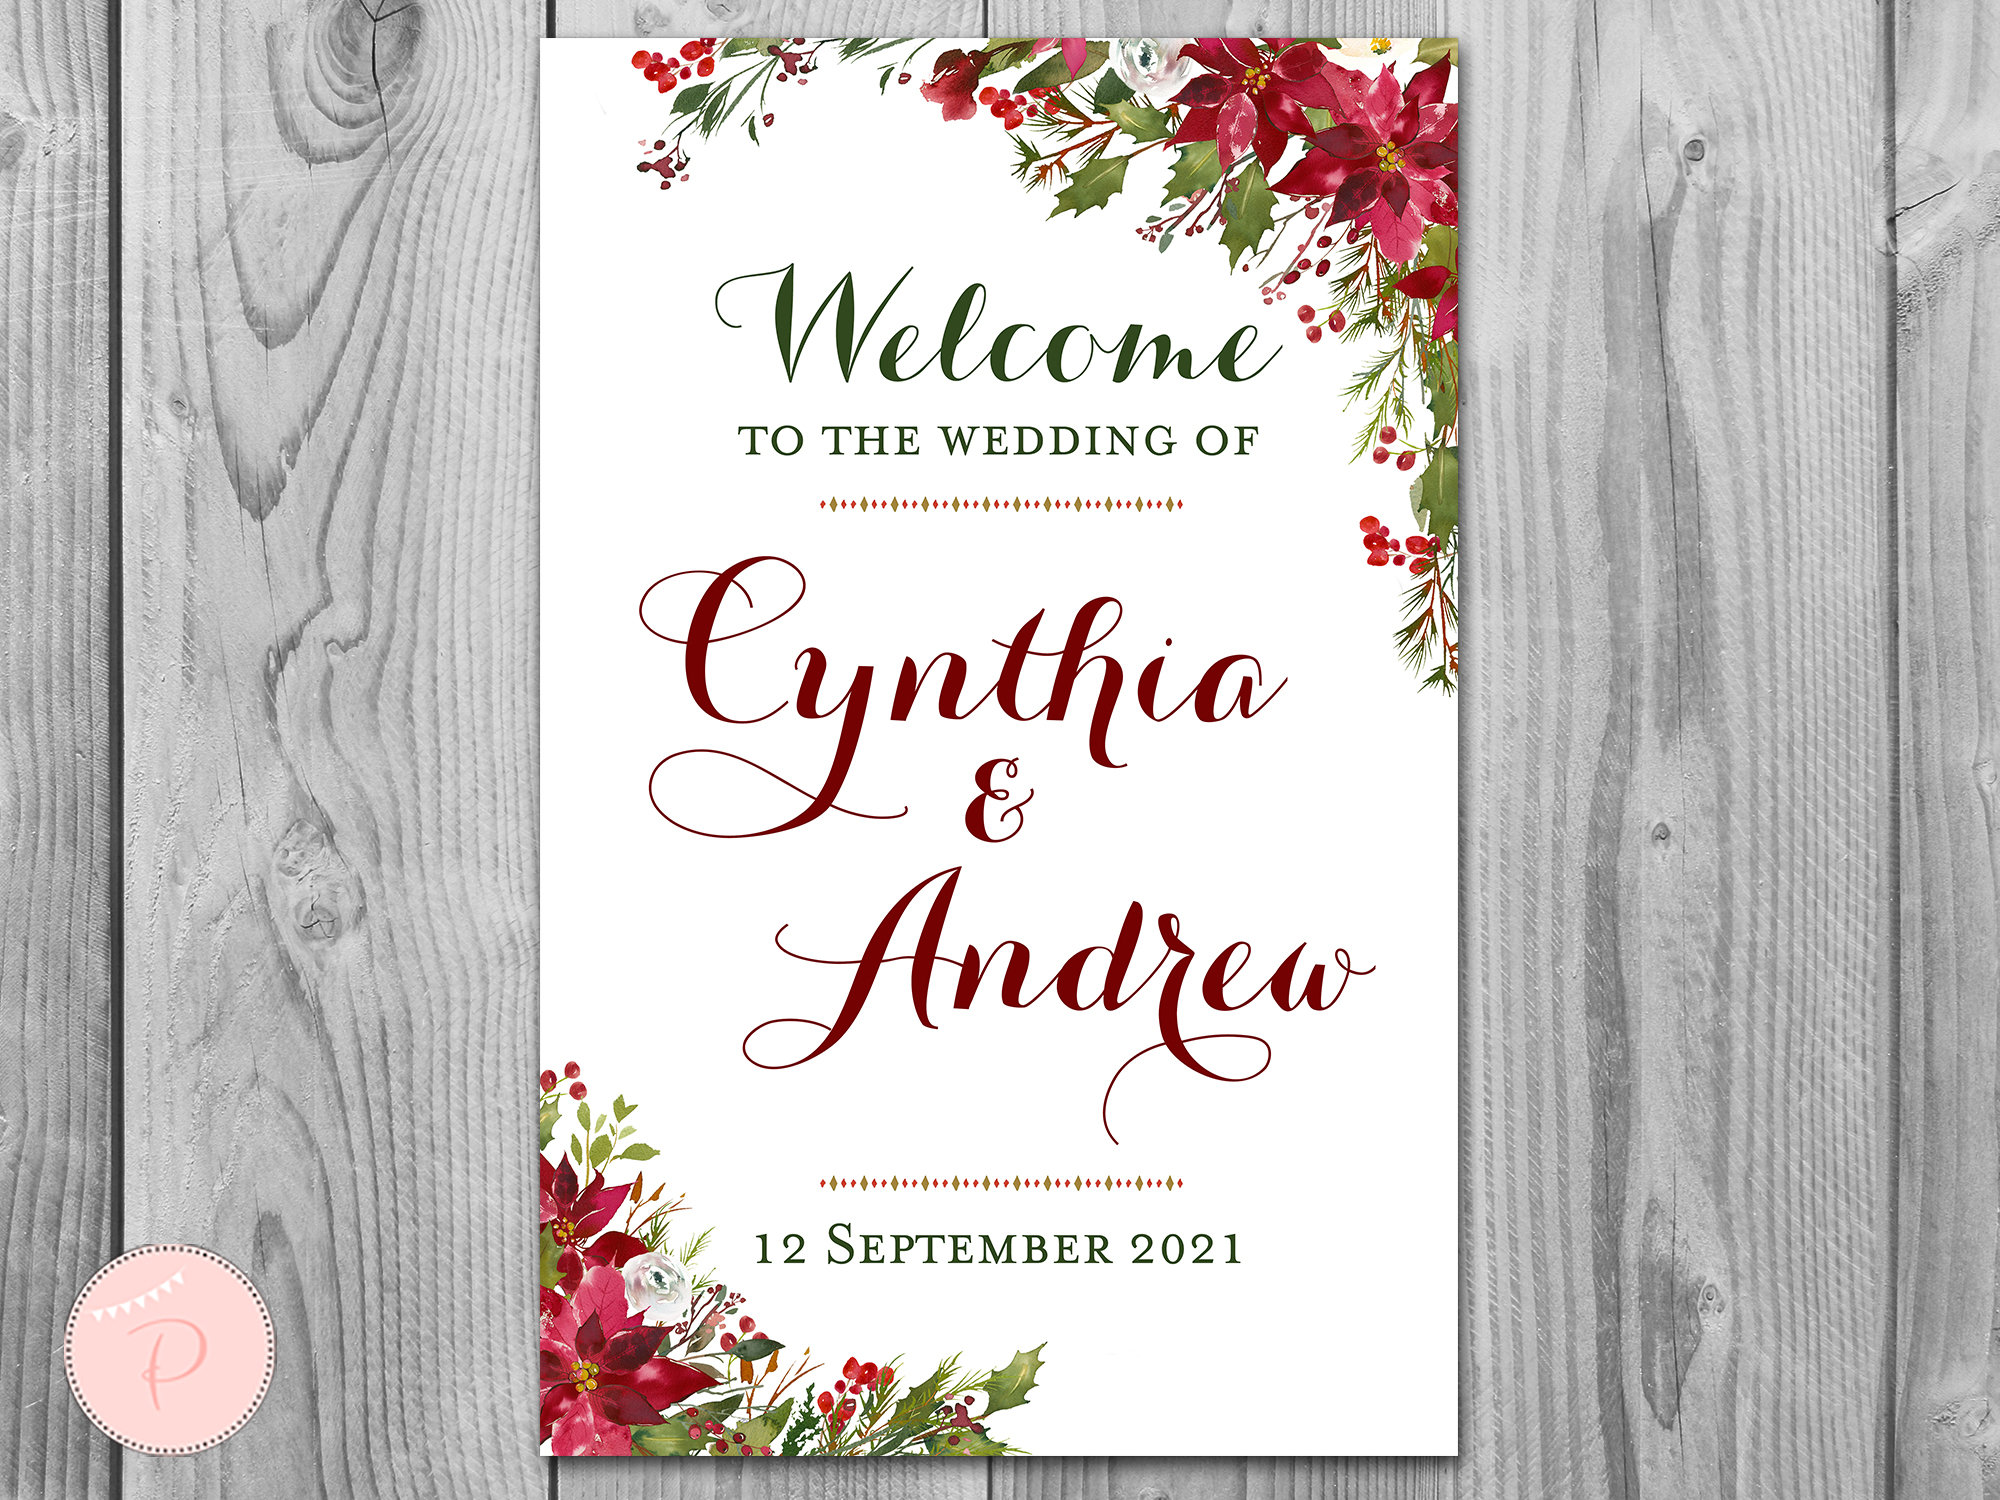 Christmas Personalized Welcome Wedding Sign, Wedding Sign, Red Pointsetta Floral Decoration, Printable Sign Th88 Ws34